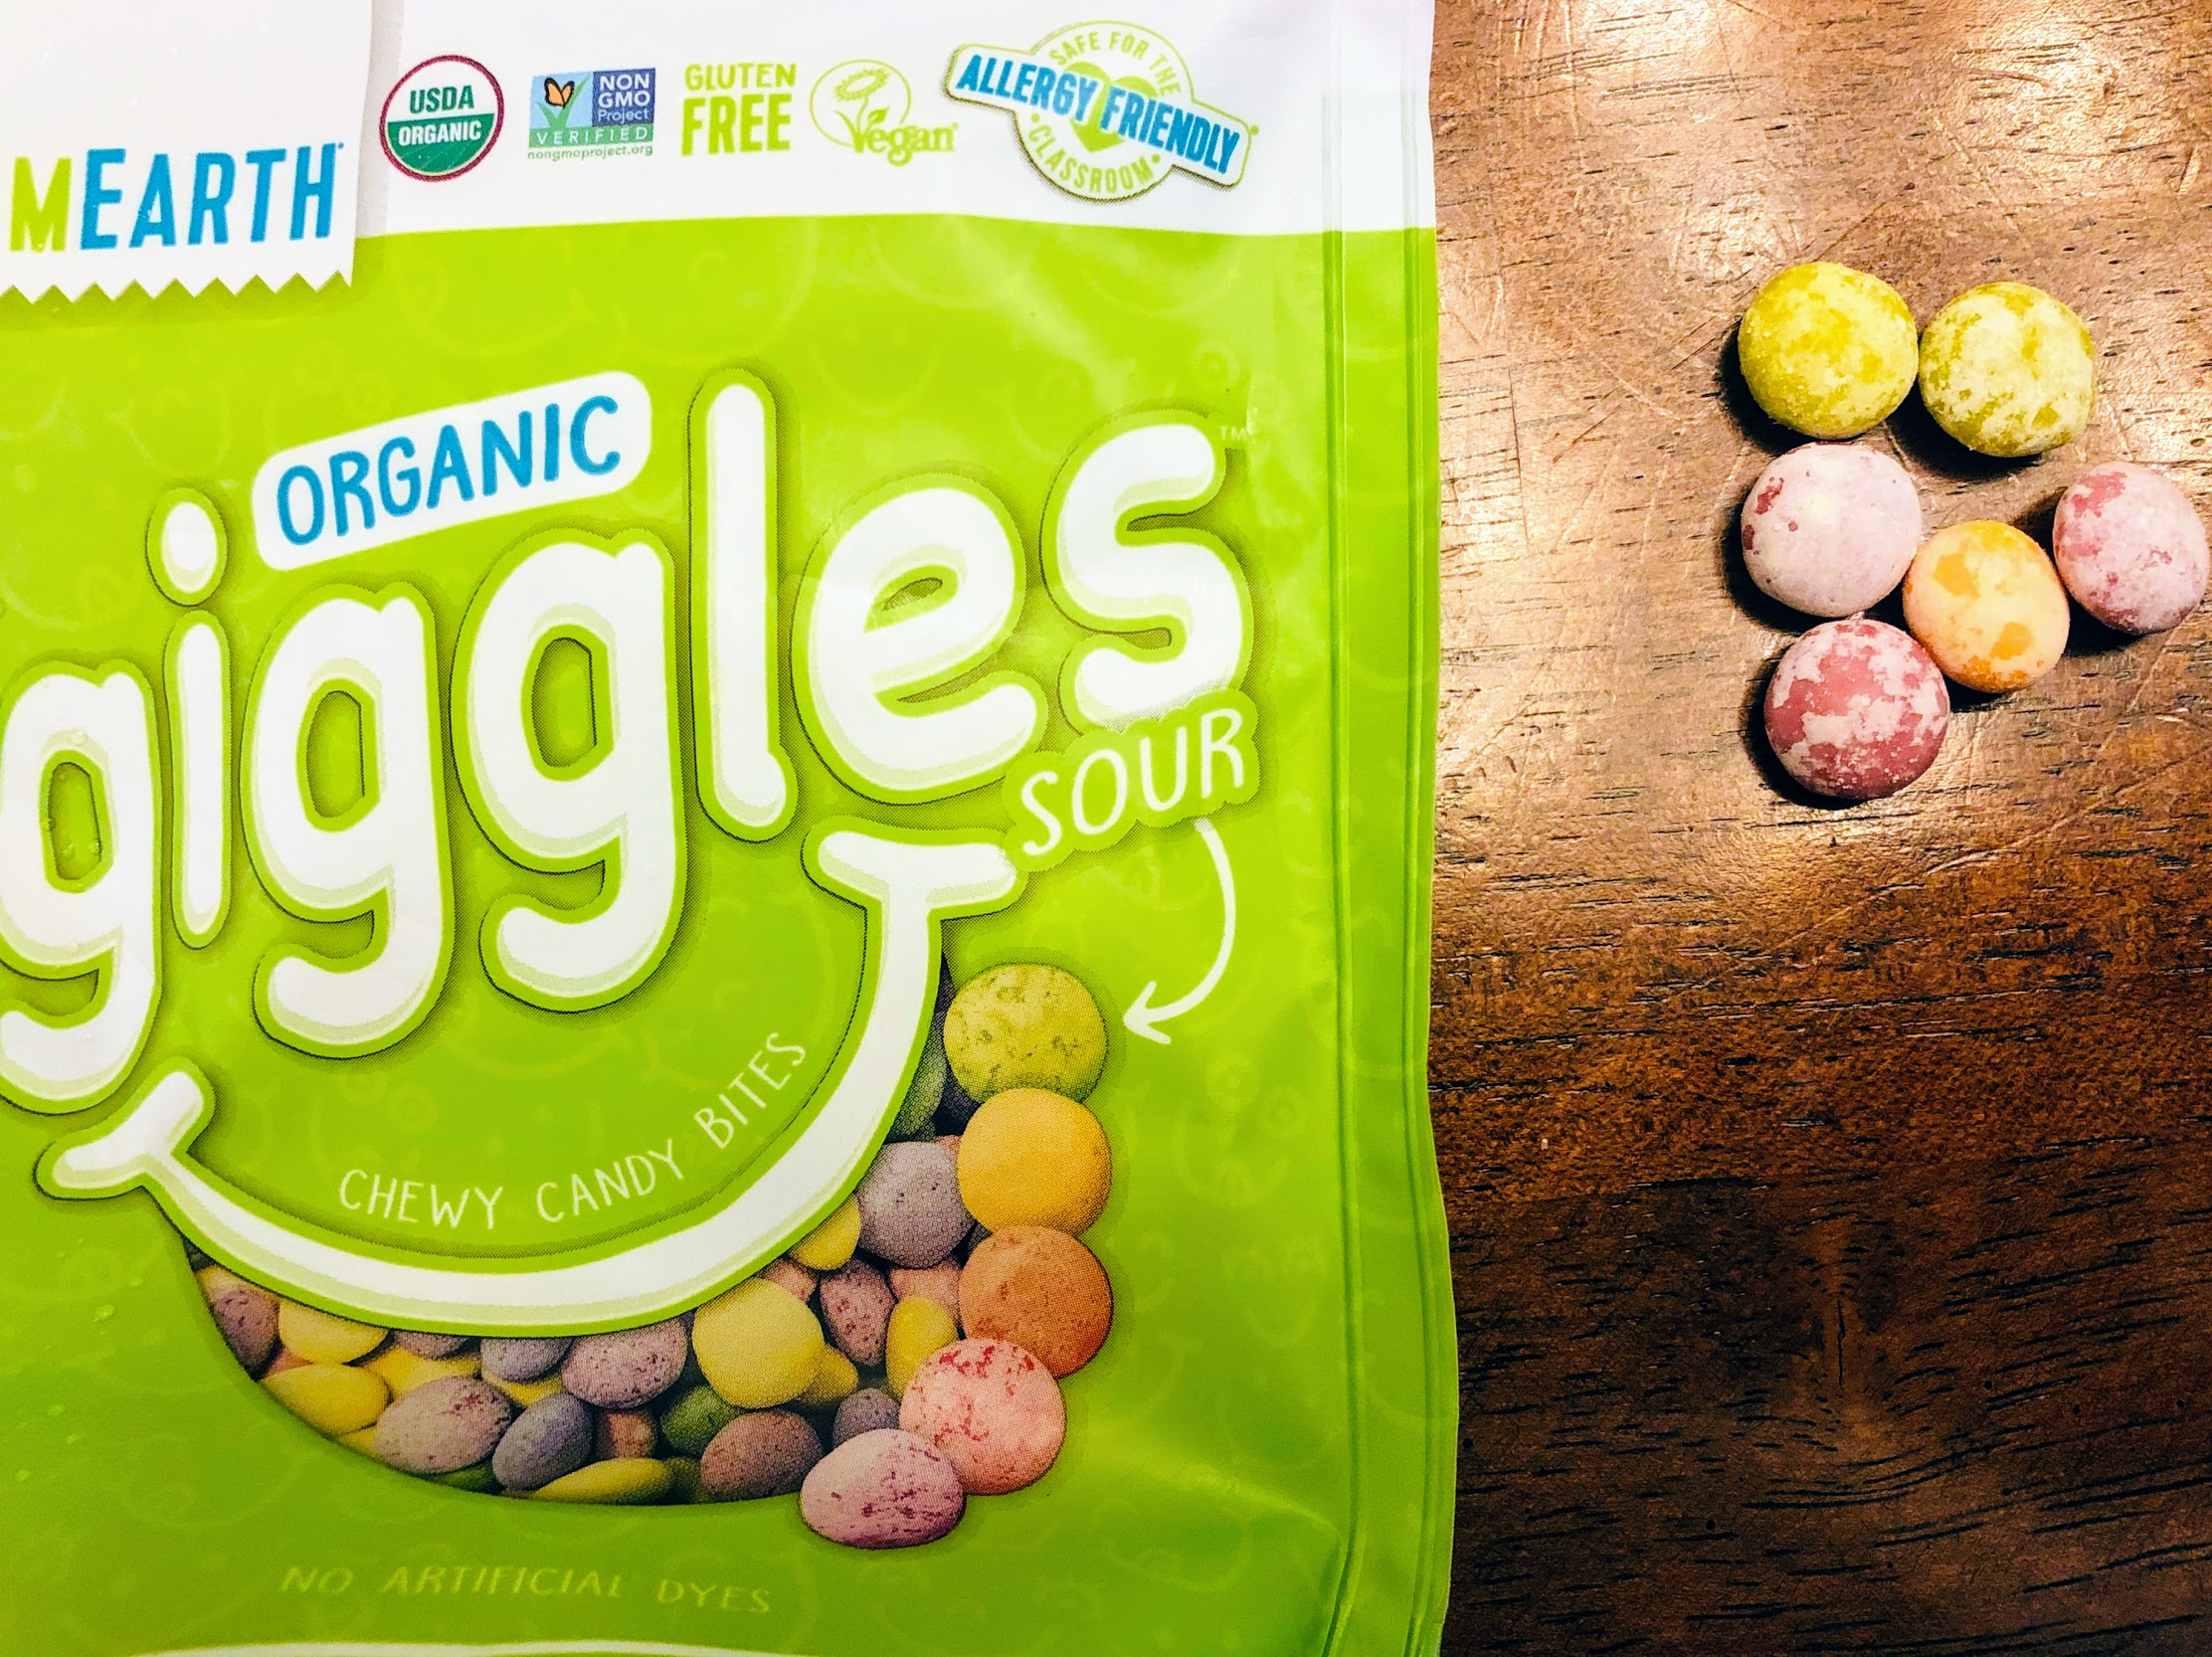 Found: If You're a Fan of Lemonheads, This Candy Will Be Your Next Favorite!